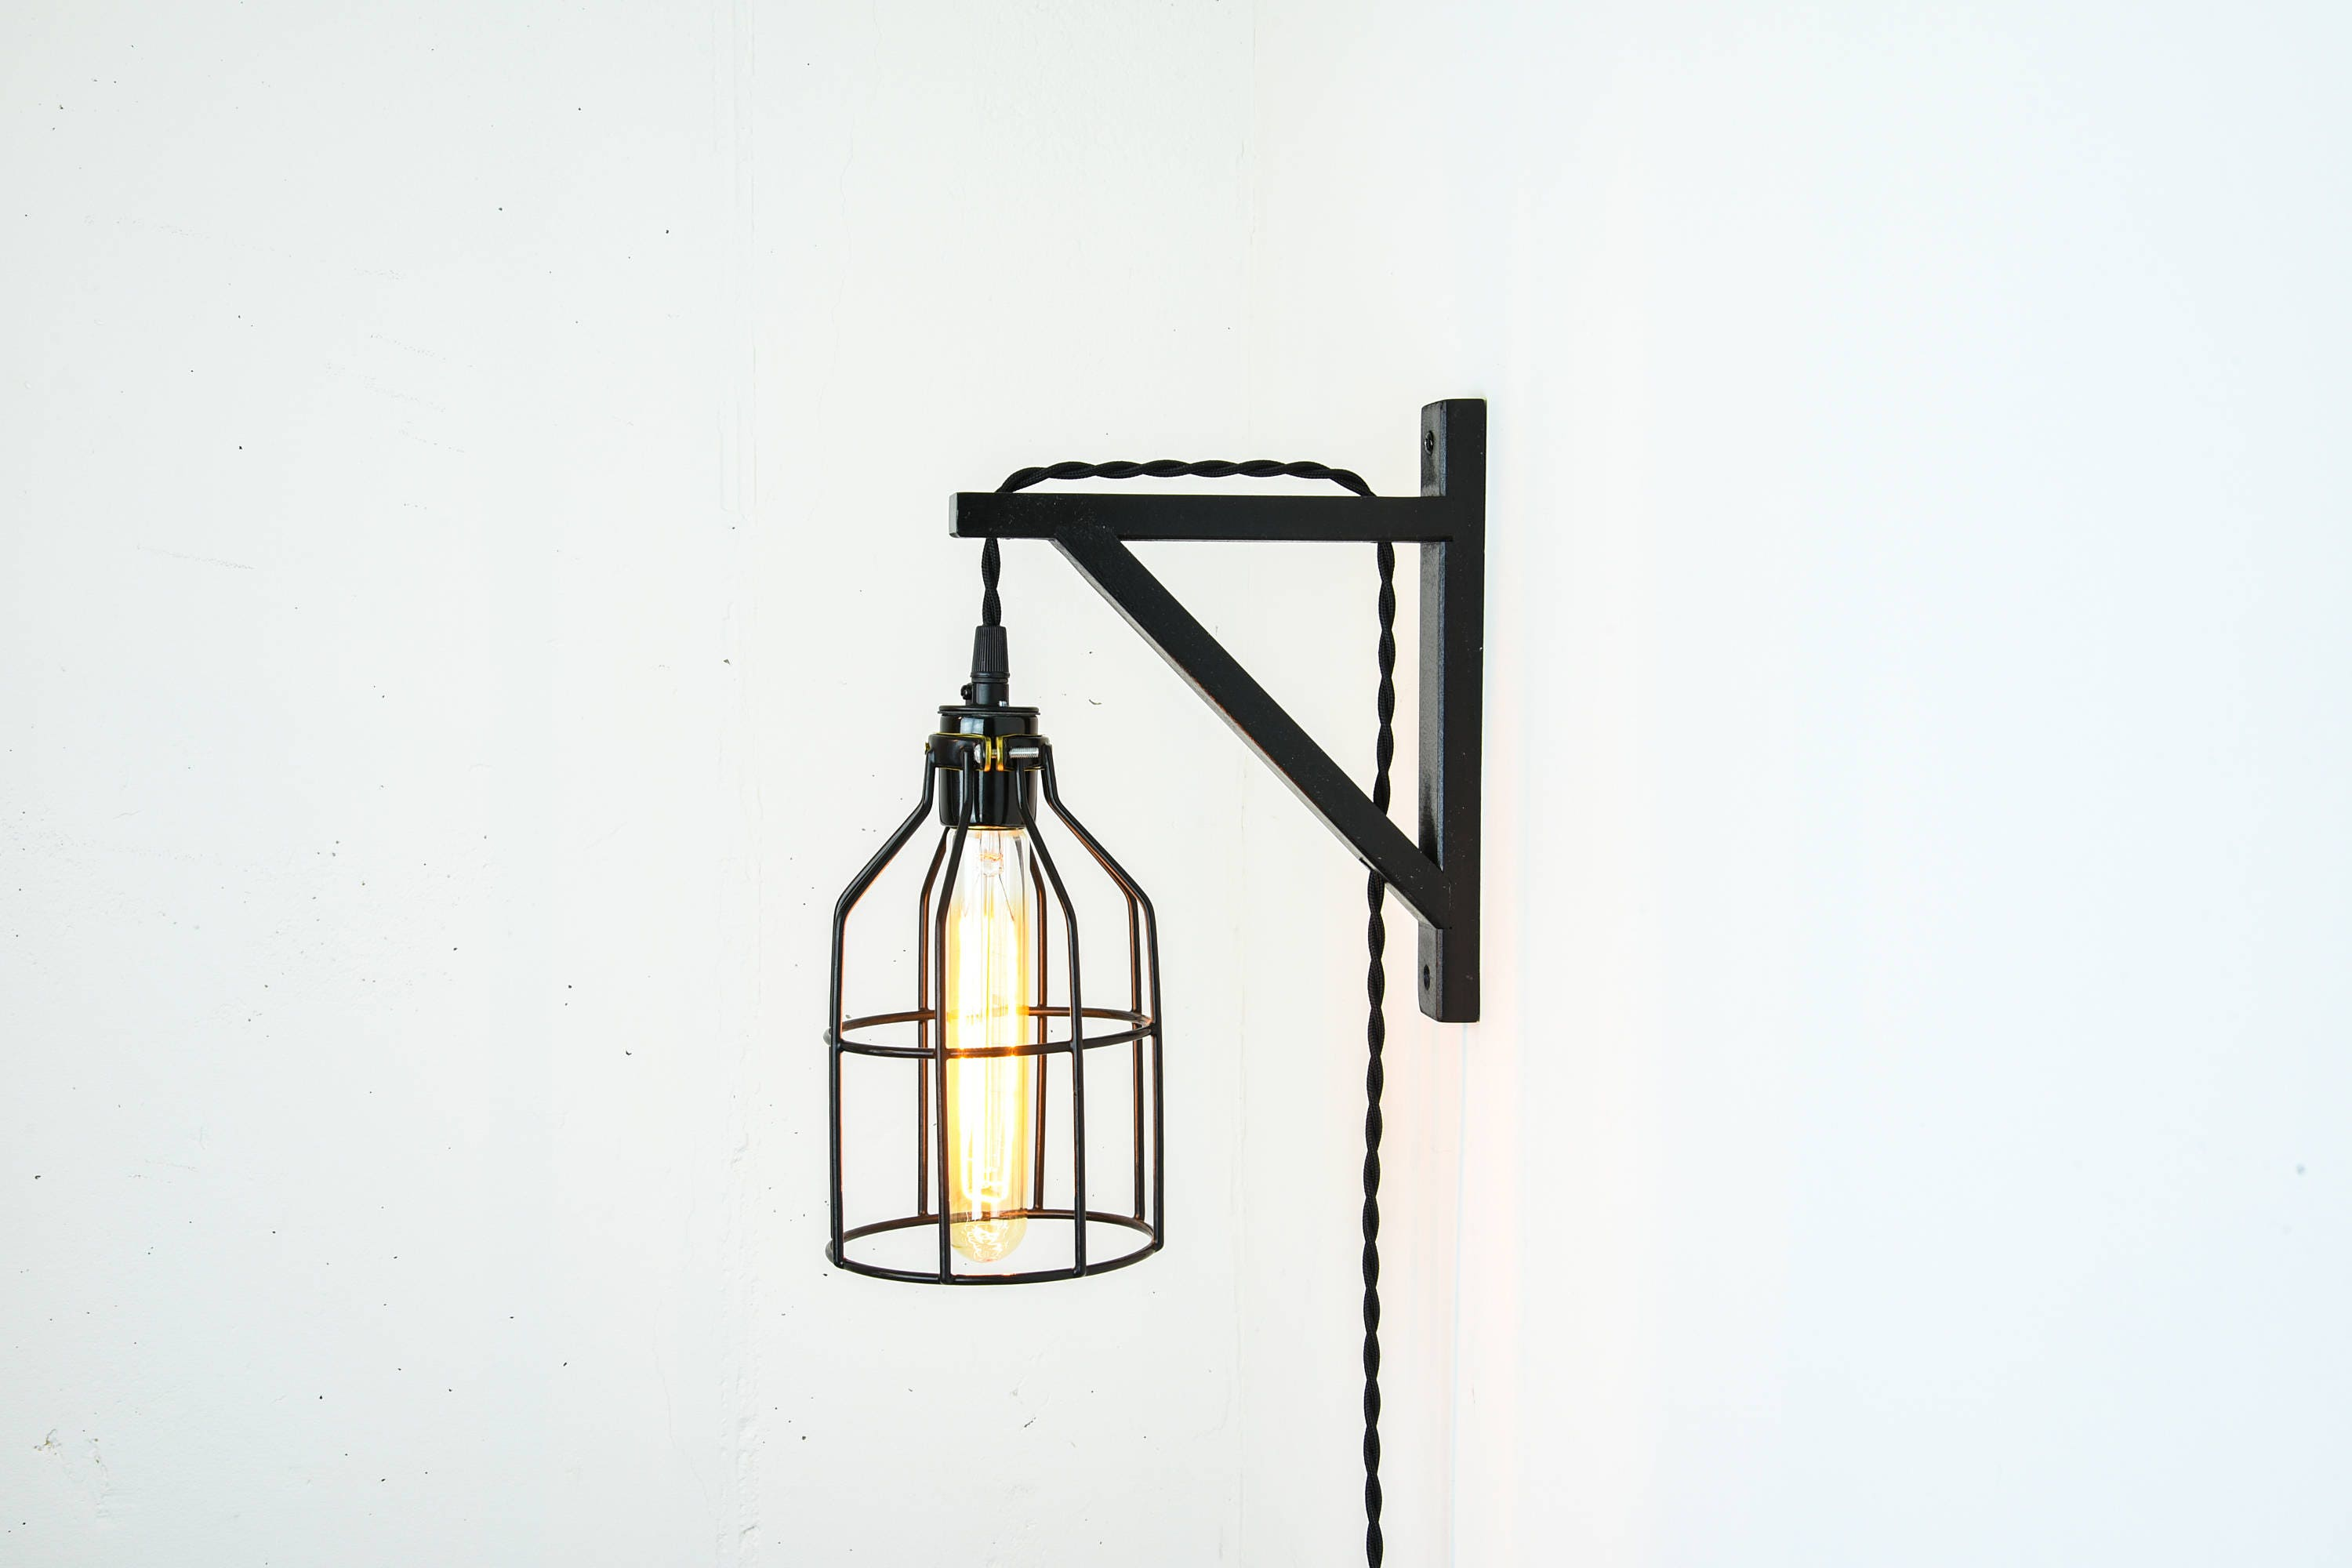 Plug In Wall Sconce   Bulb Guard Light   Light Bulb Cage Lamp   Black Wall  Sconce   Wall Lamp   Farmhouse Lighting   Antique Sconce   Unique